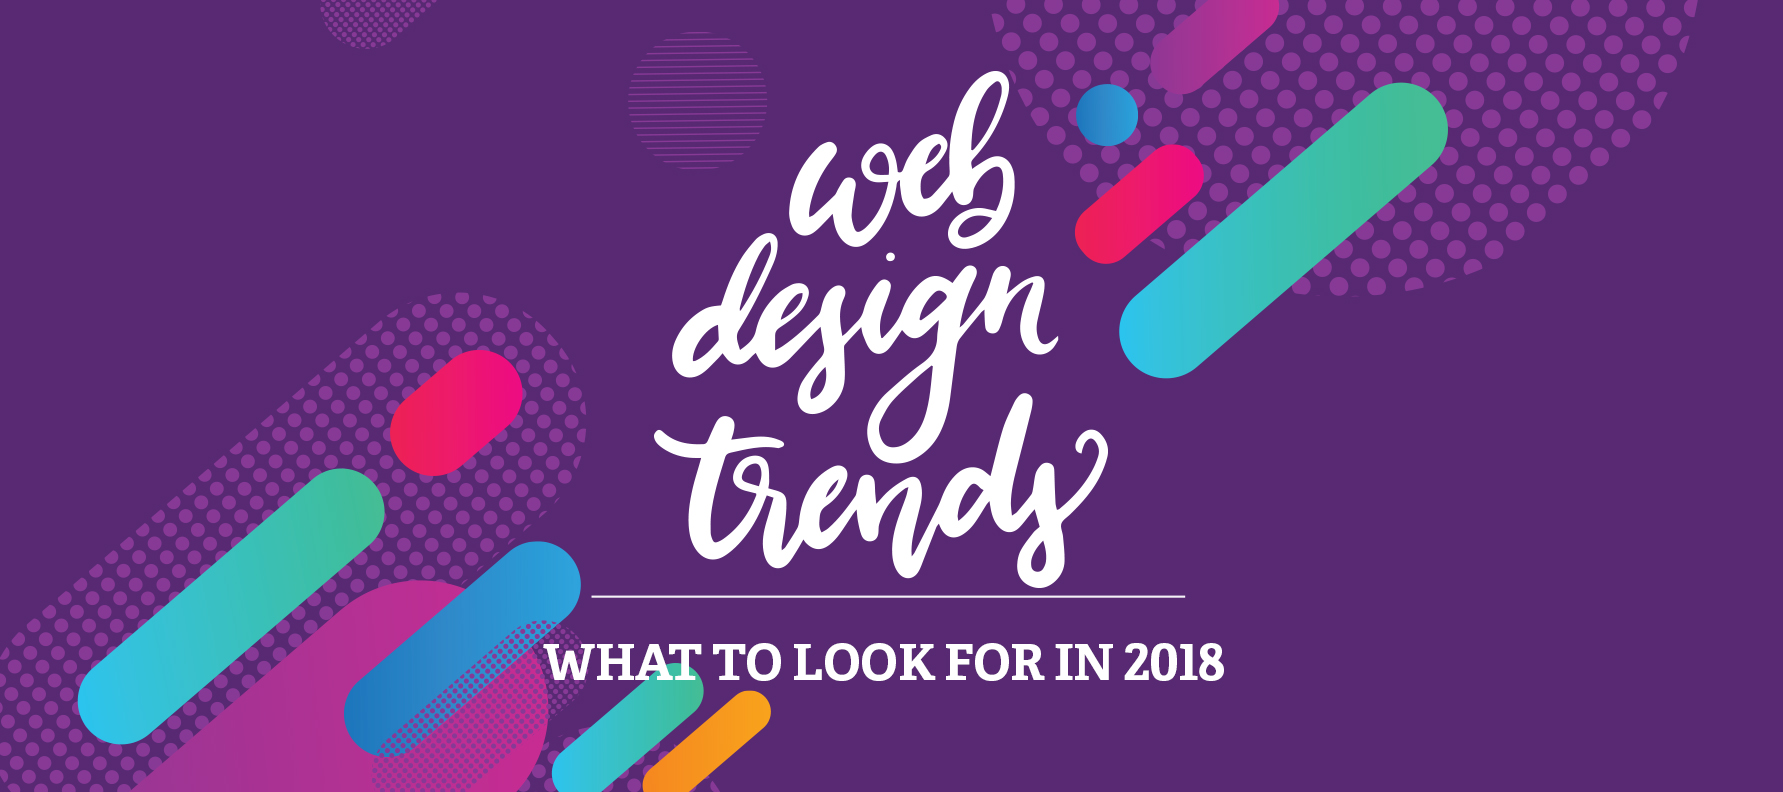 Web Design Trends: What to Look for in 2018